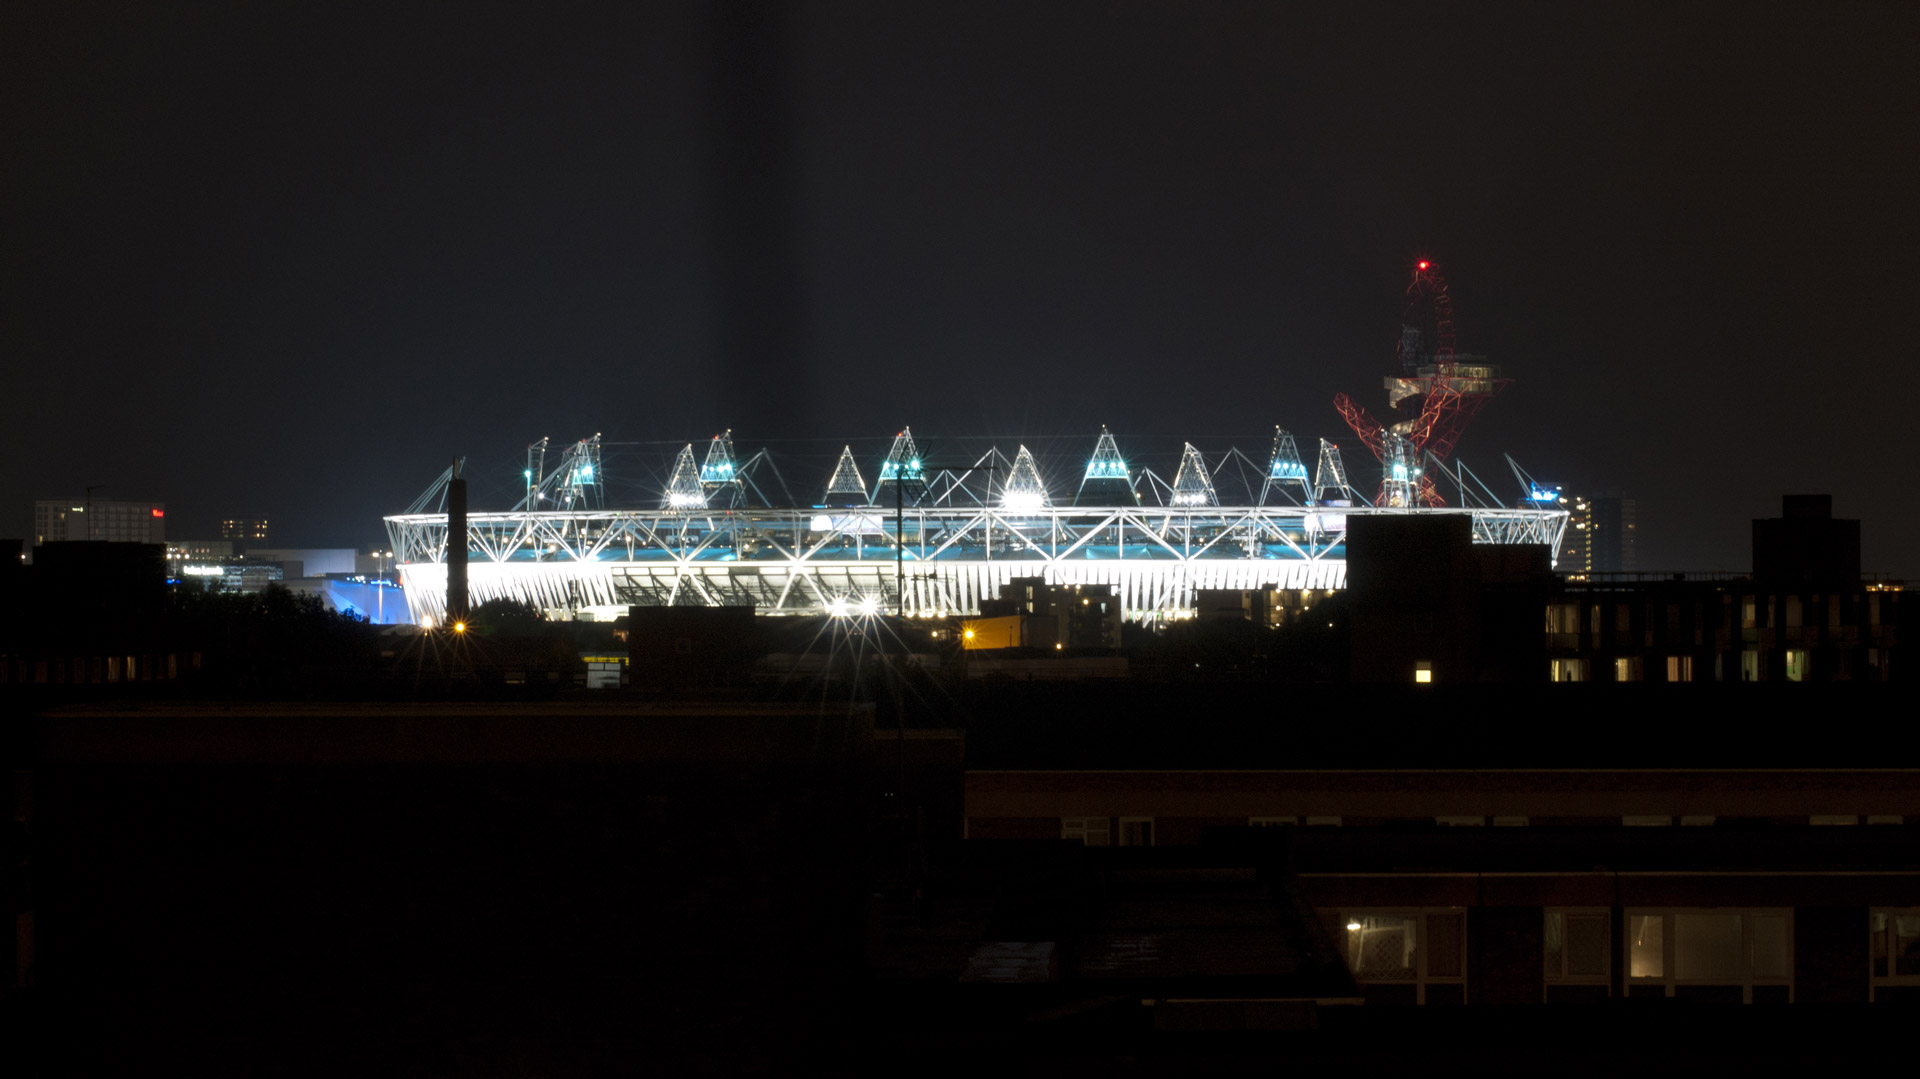 London 2012 Olympiad Stadium, opening night just before the opening ceremony, view from West.